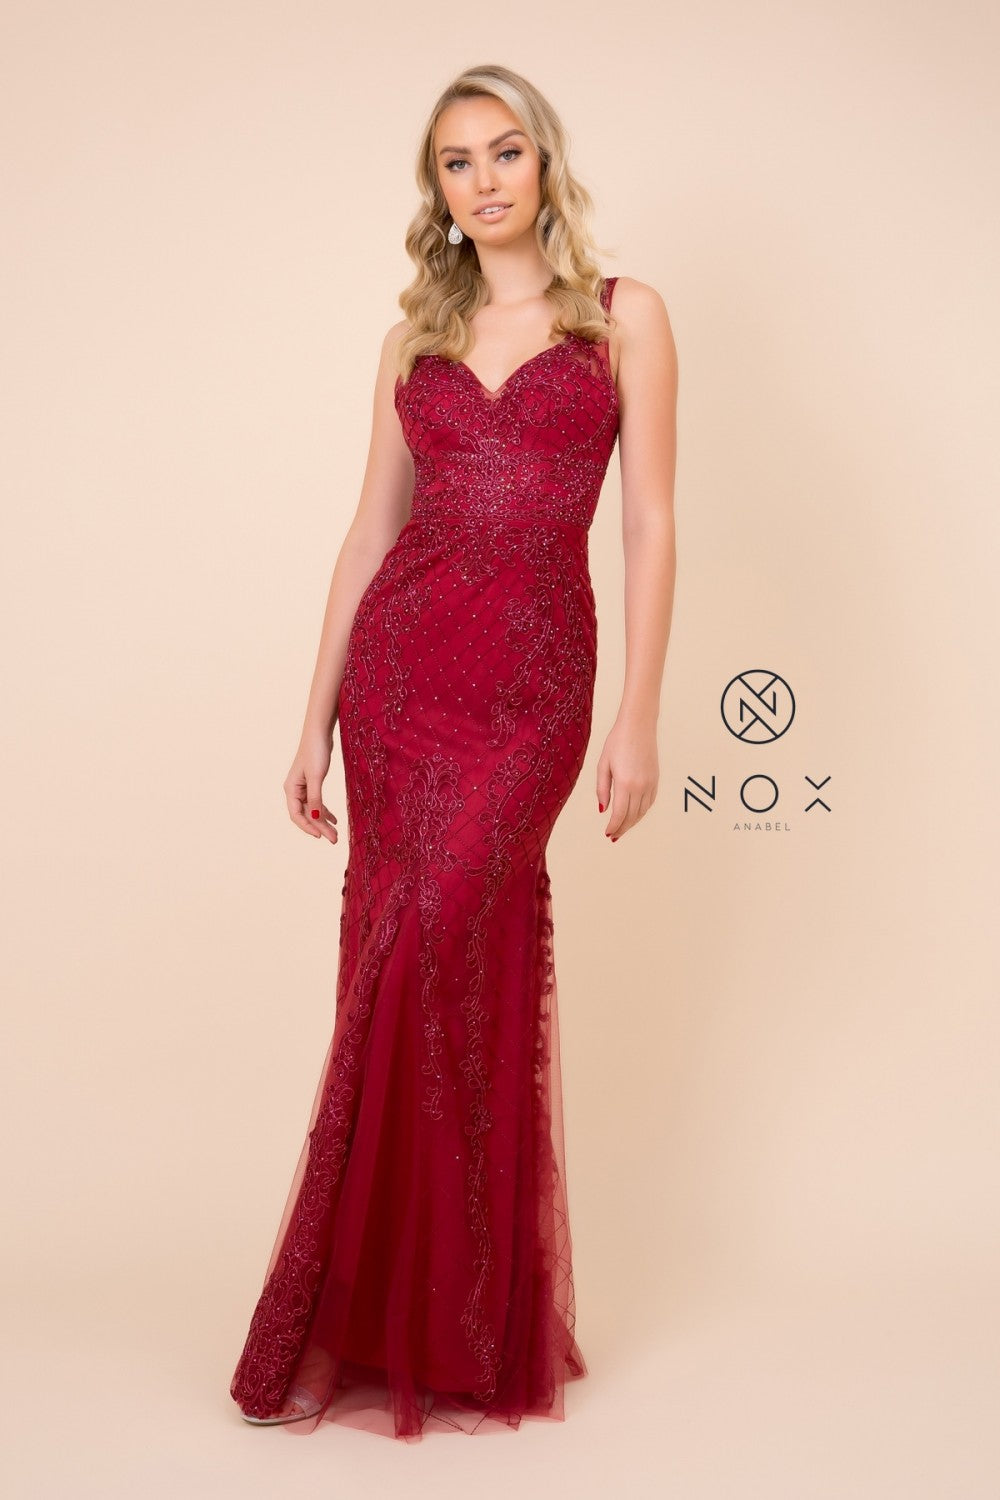 Nox N A398 - Fit & Flare V-Neck Prom Gown with Lace Applique & Beading - Diggz Prom